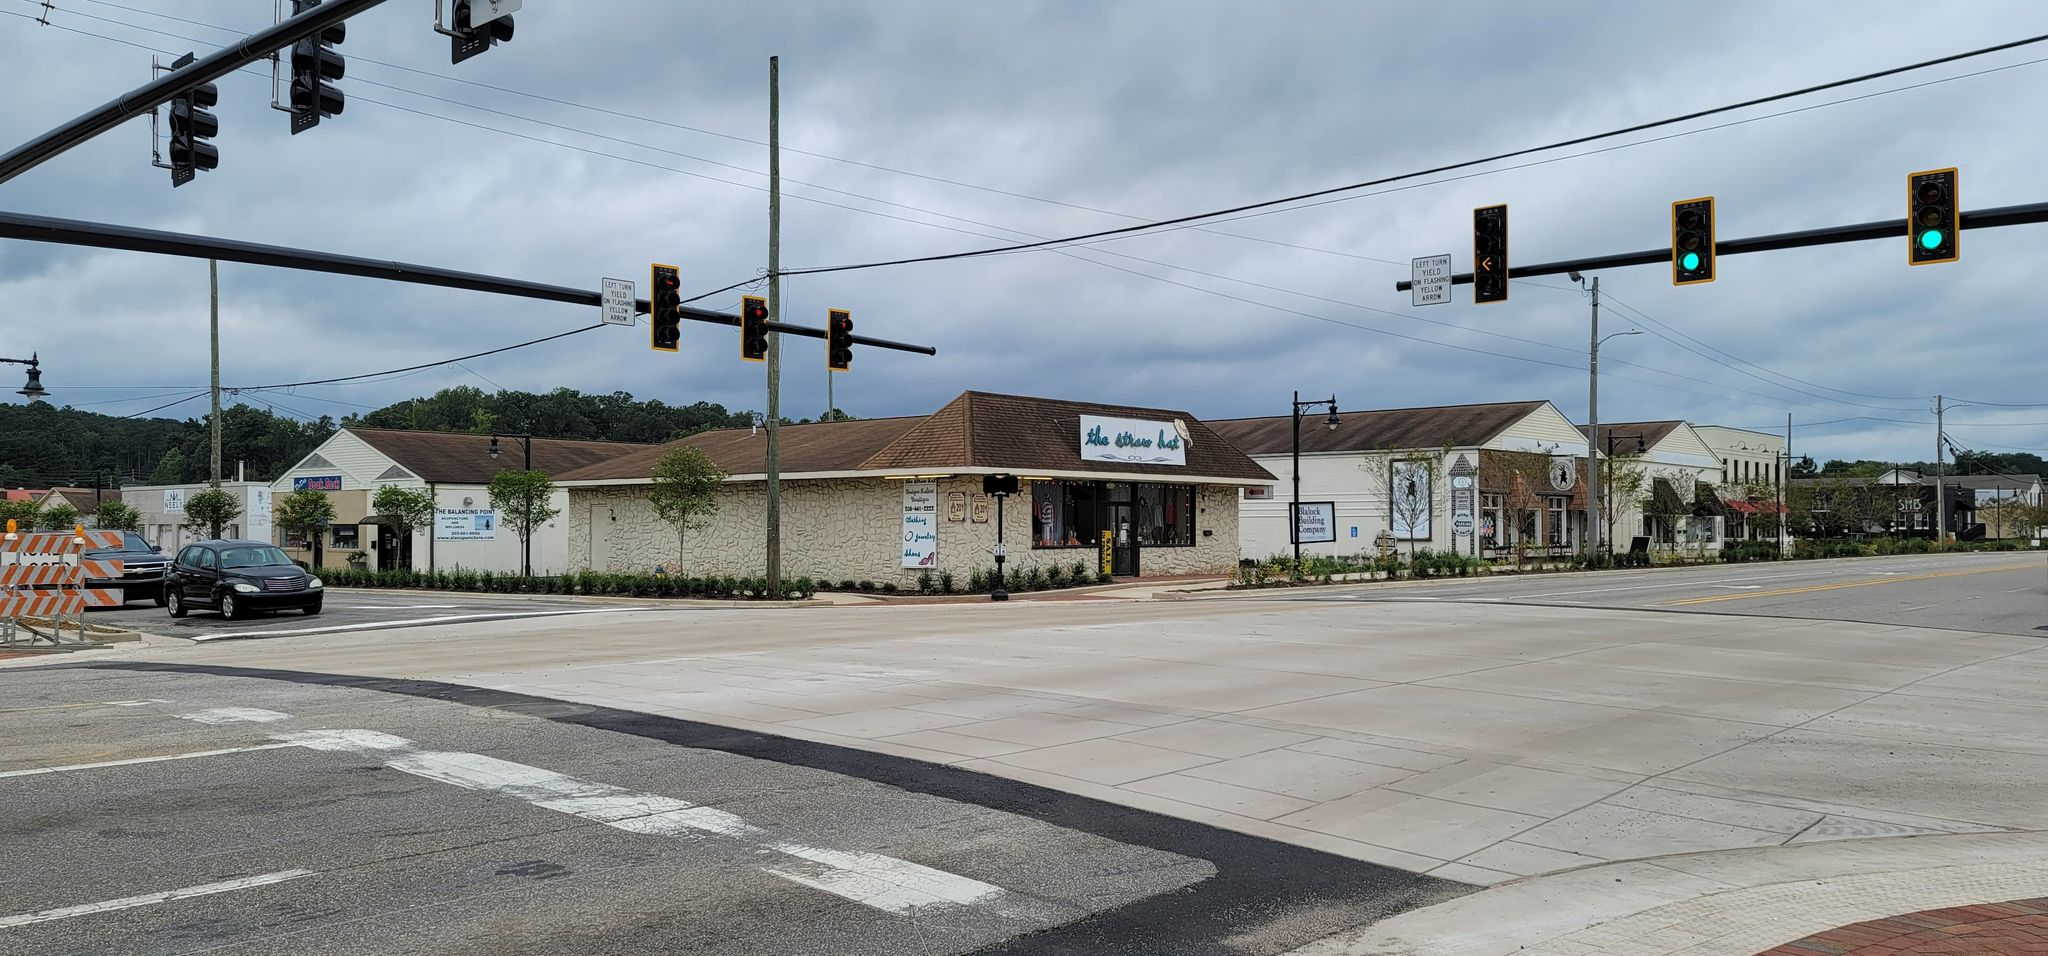 PHOTOS: Downtown Trussville intersection reopen after renovations and improvements